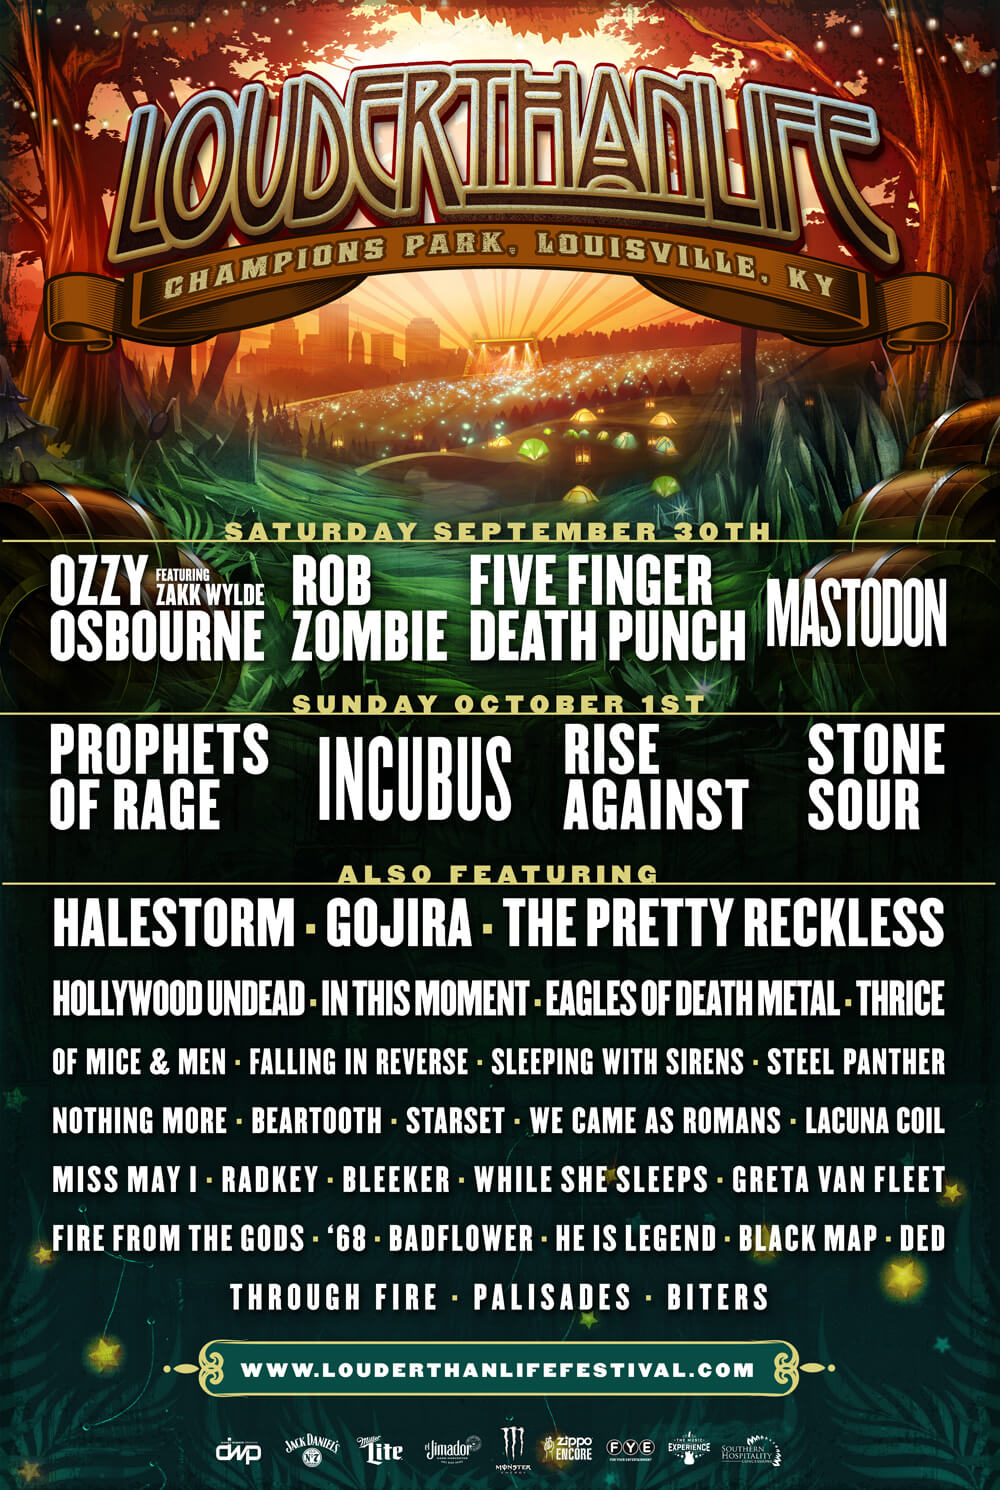 louder than life Louder Than Life reveals 2017 lineup: Ozzy Osbourne, Prophets of Rage, Incubus, and Mastodon